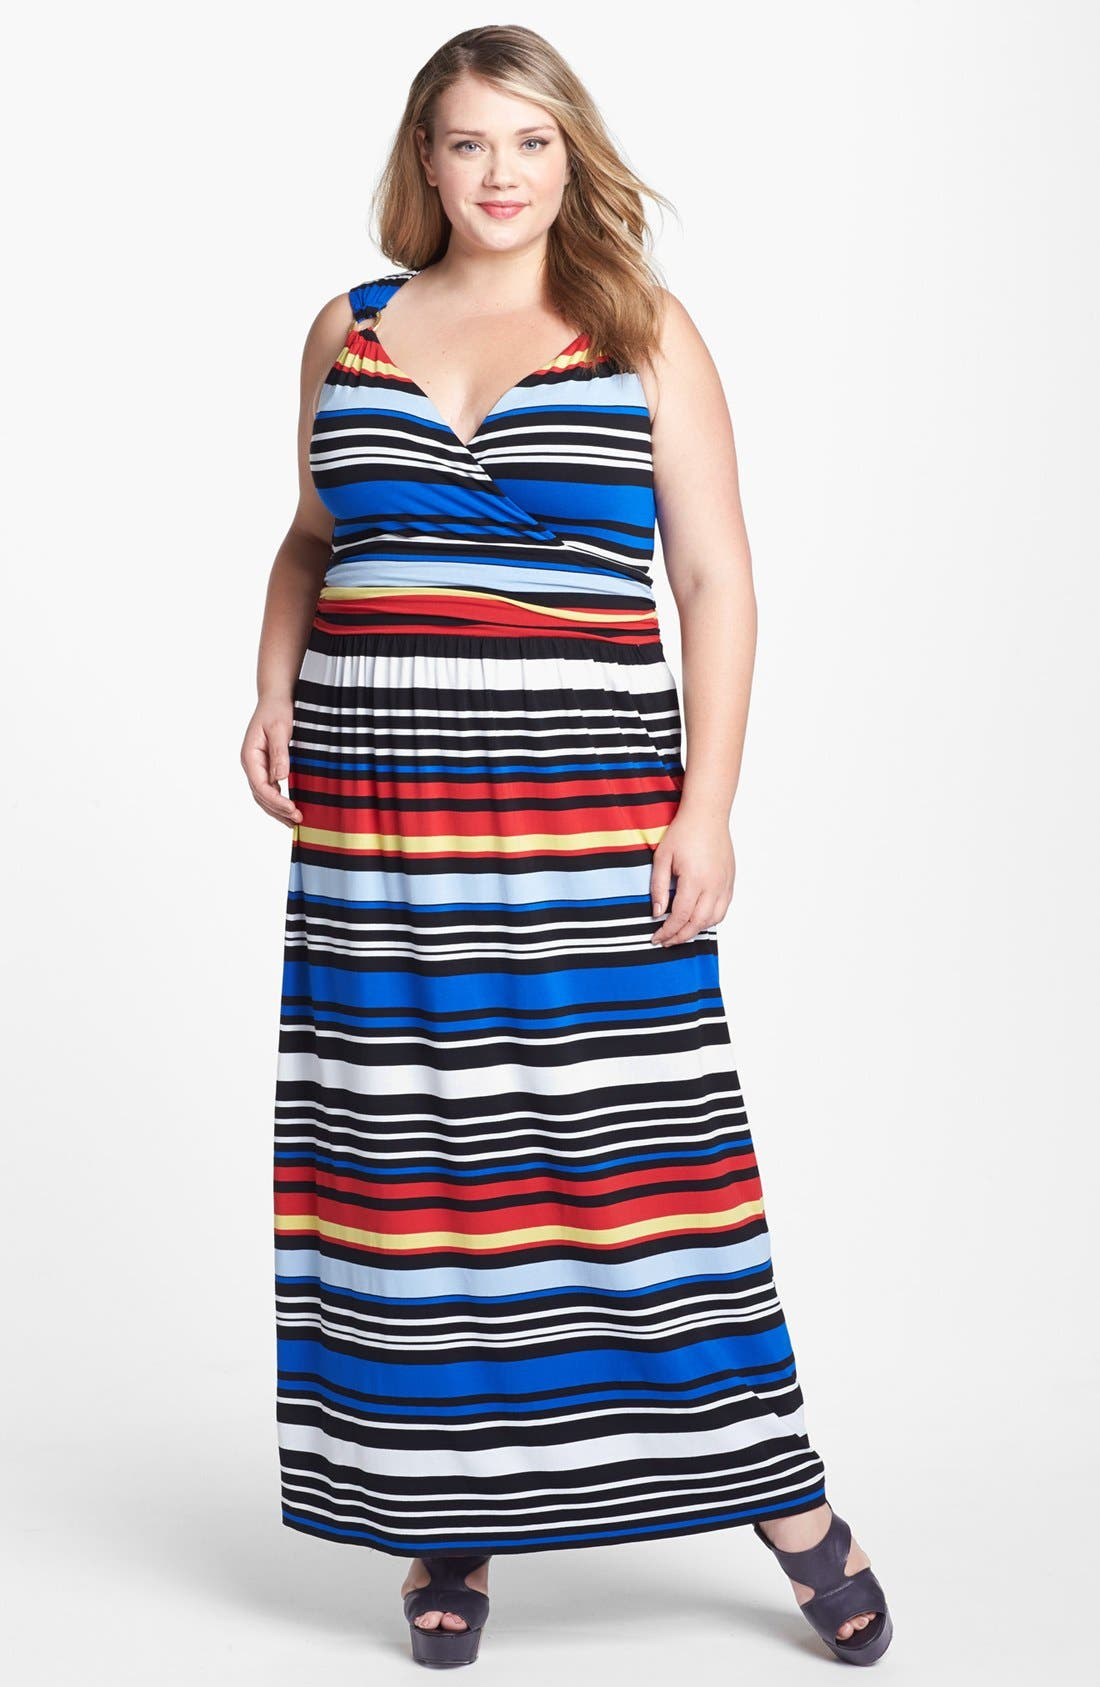 Main Image - Vince Camuto Bright Stripe Maxi Dress (Plus Size) (Online Only)